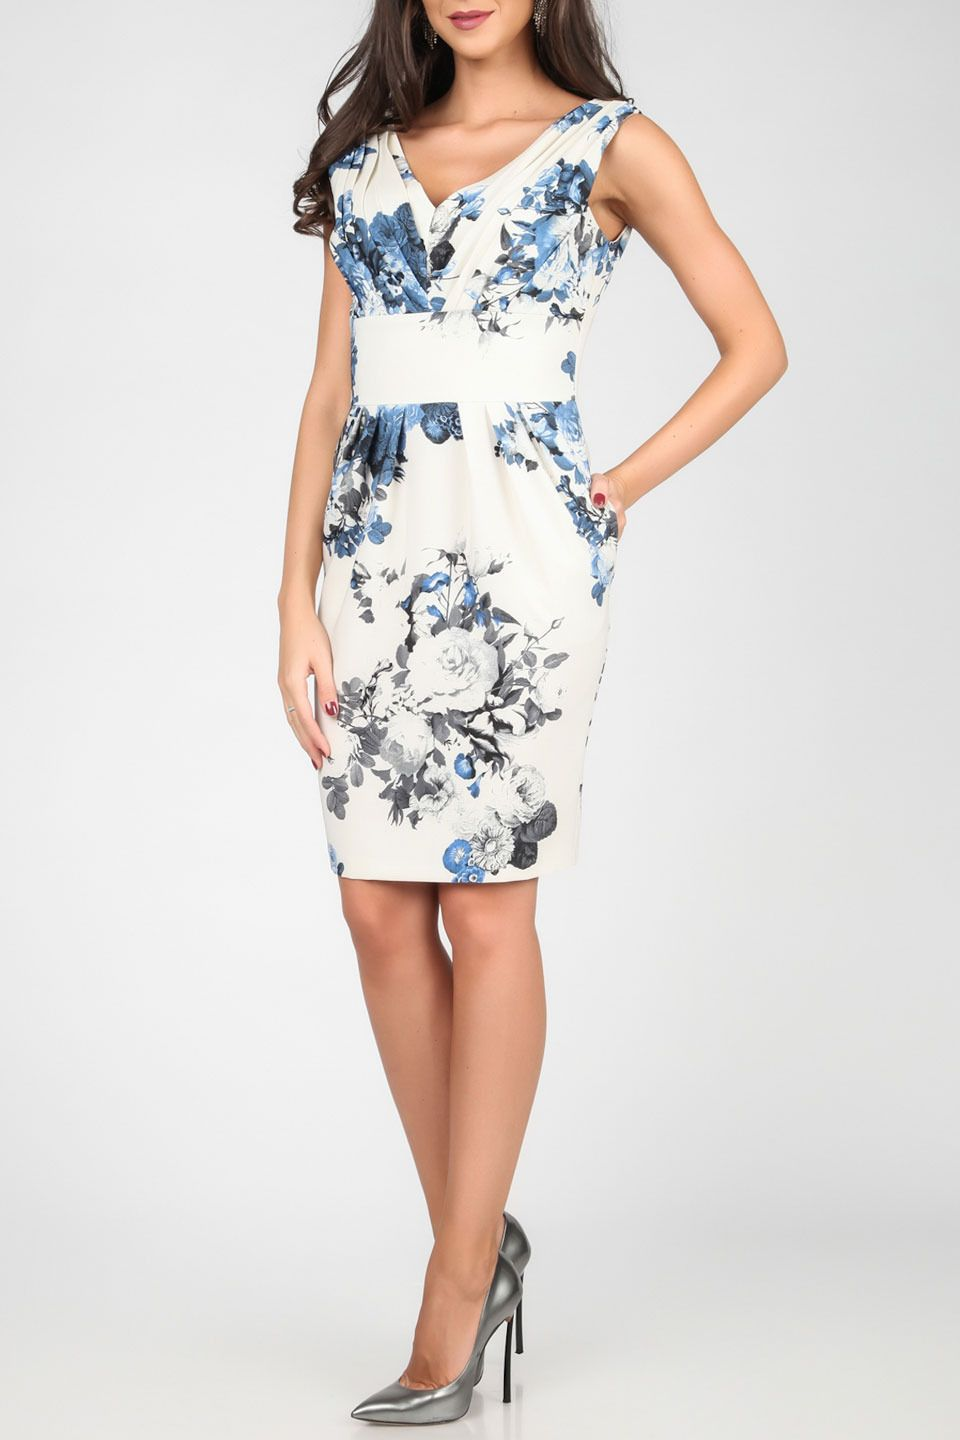 Isabel by Rozarancio - Nr 11 Printed Pencil Sleeveless Dress in White & Blue